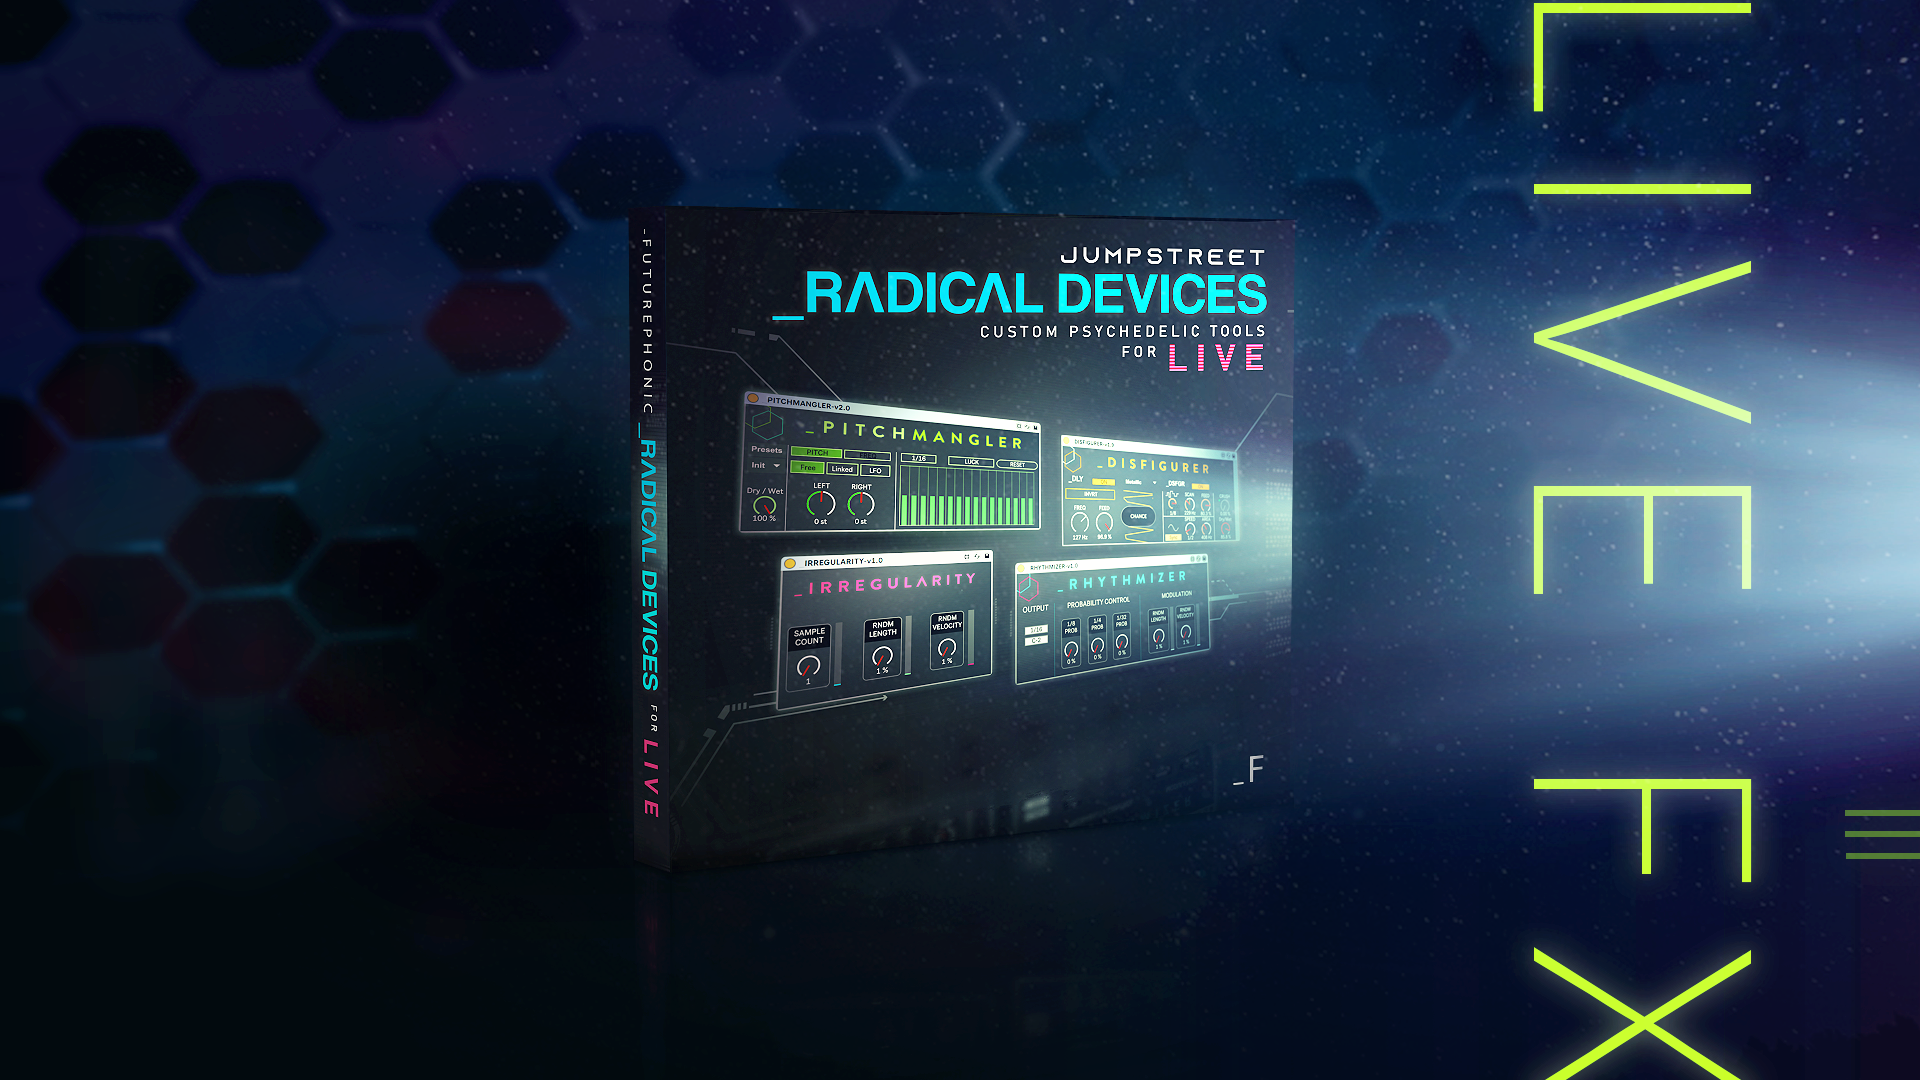 _Radical Devices for Live